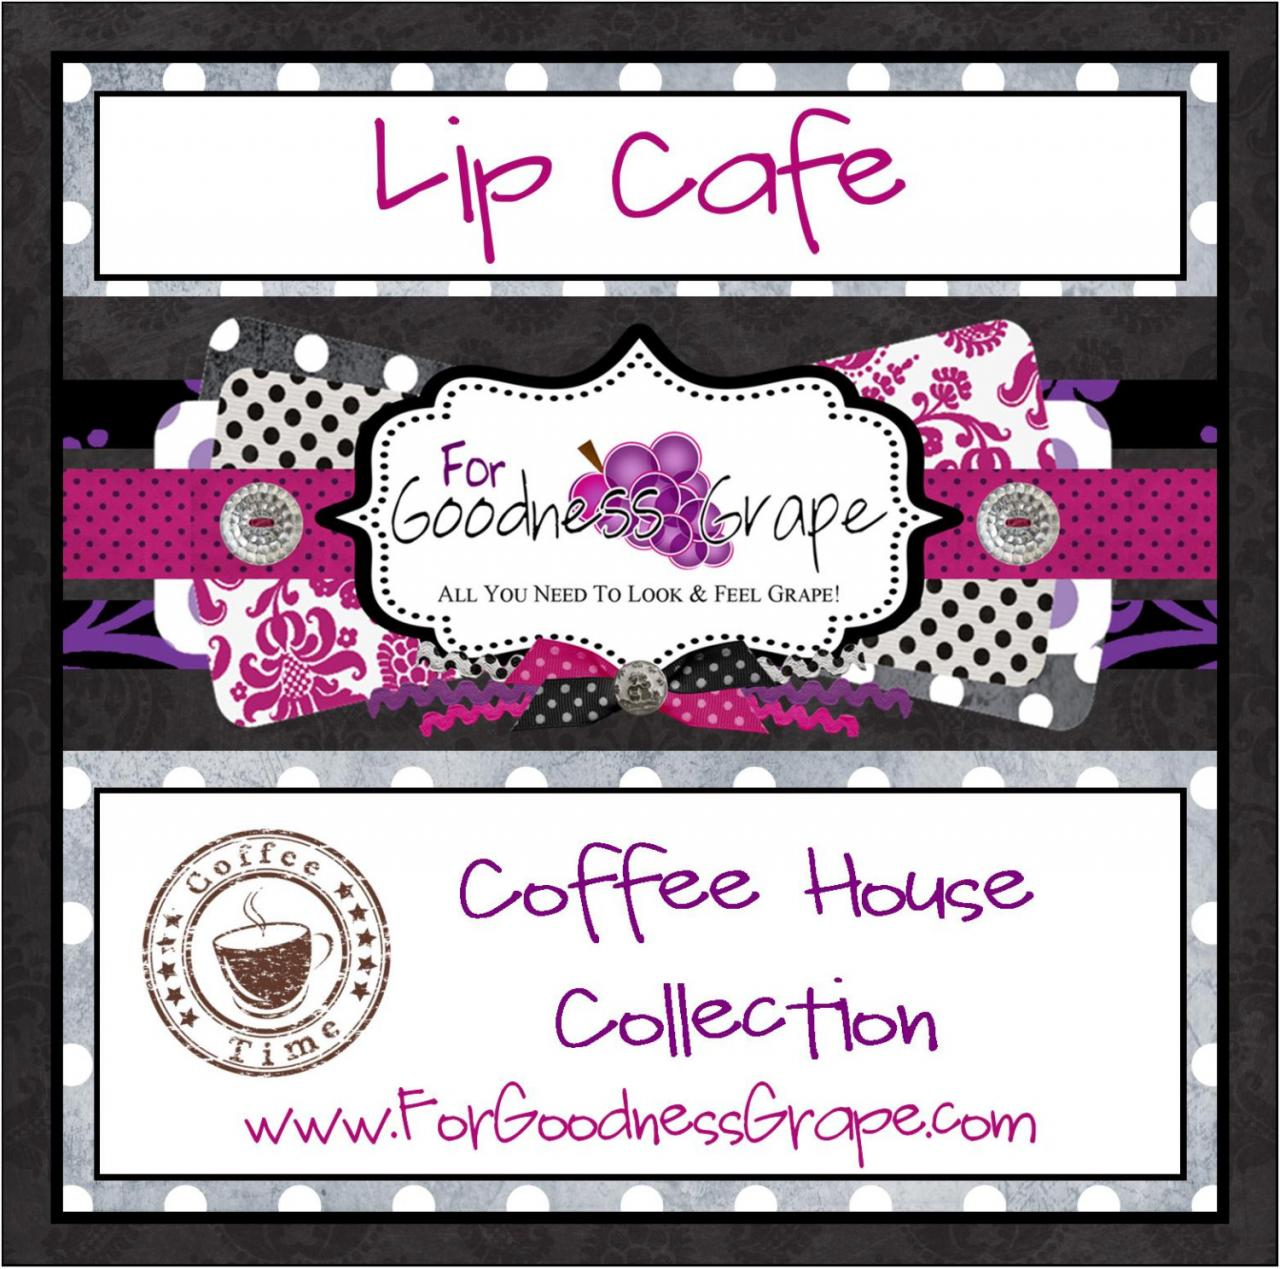 Lip Cafe Coffee House Collection Lip Balm in a Handy Tin - Your Choice of any 5 Coffee Inspired Lip Balms in this Listing